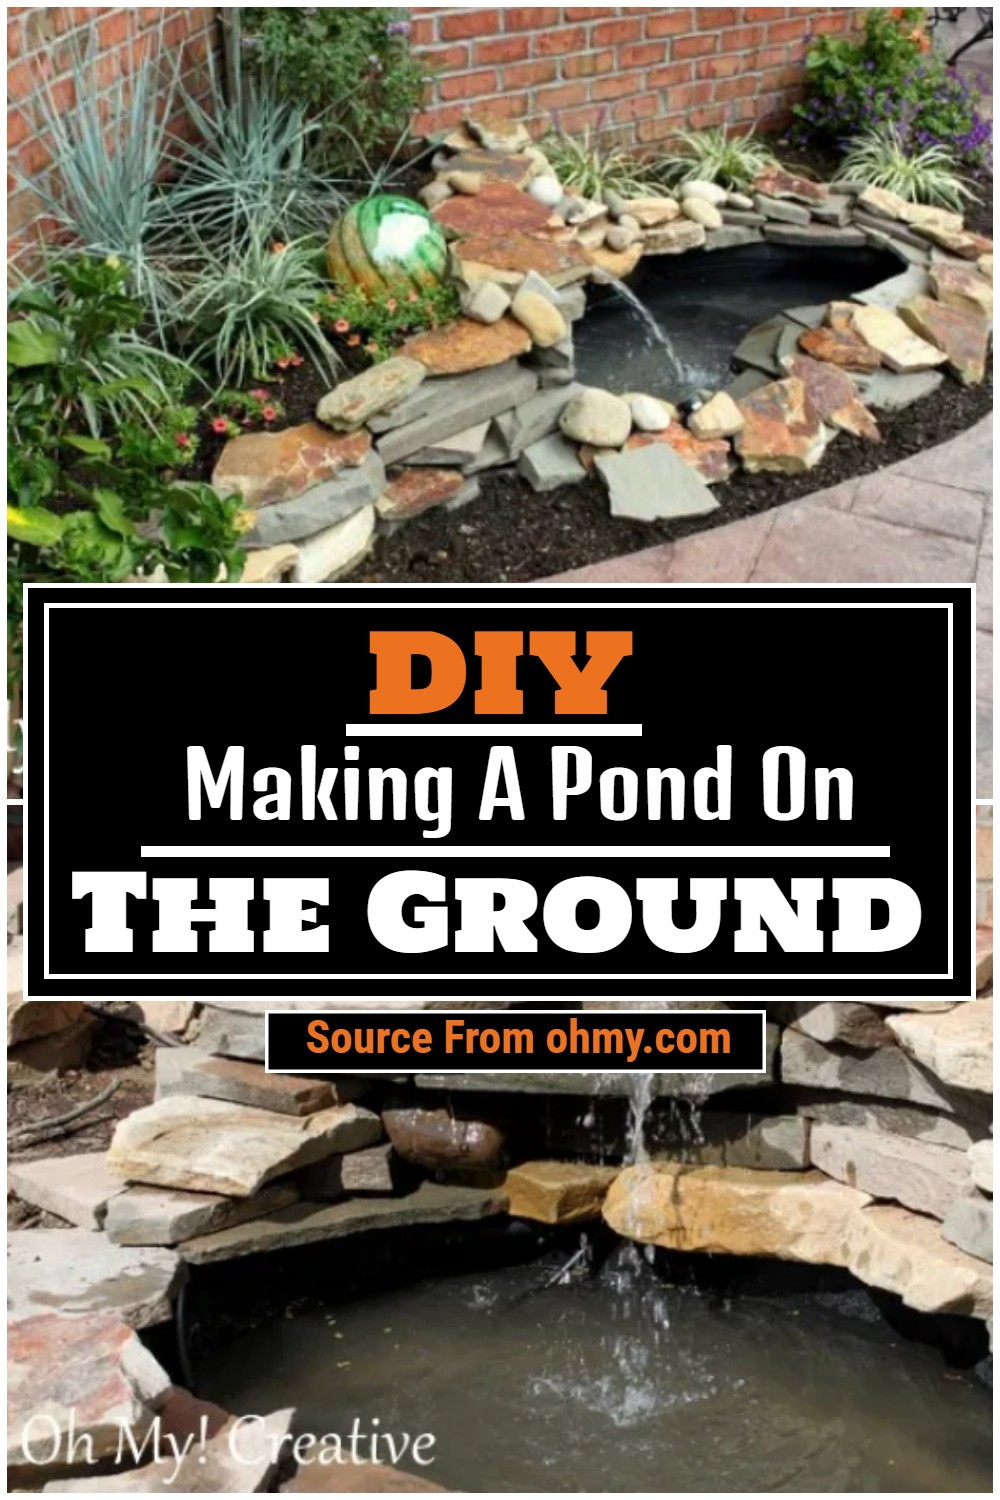 Making A Pond On The Ground